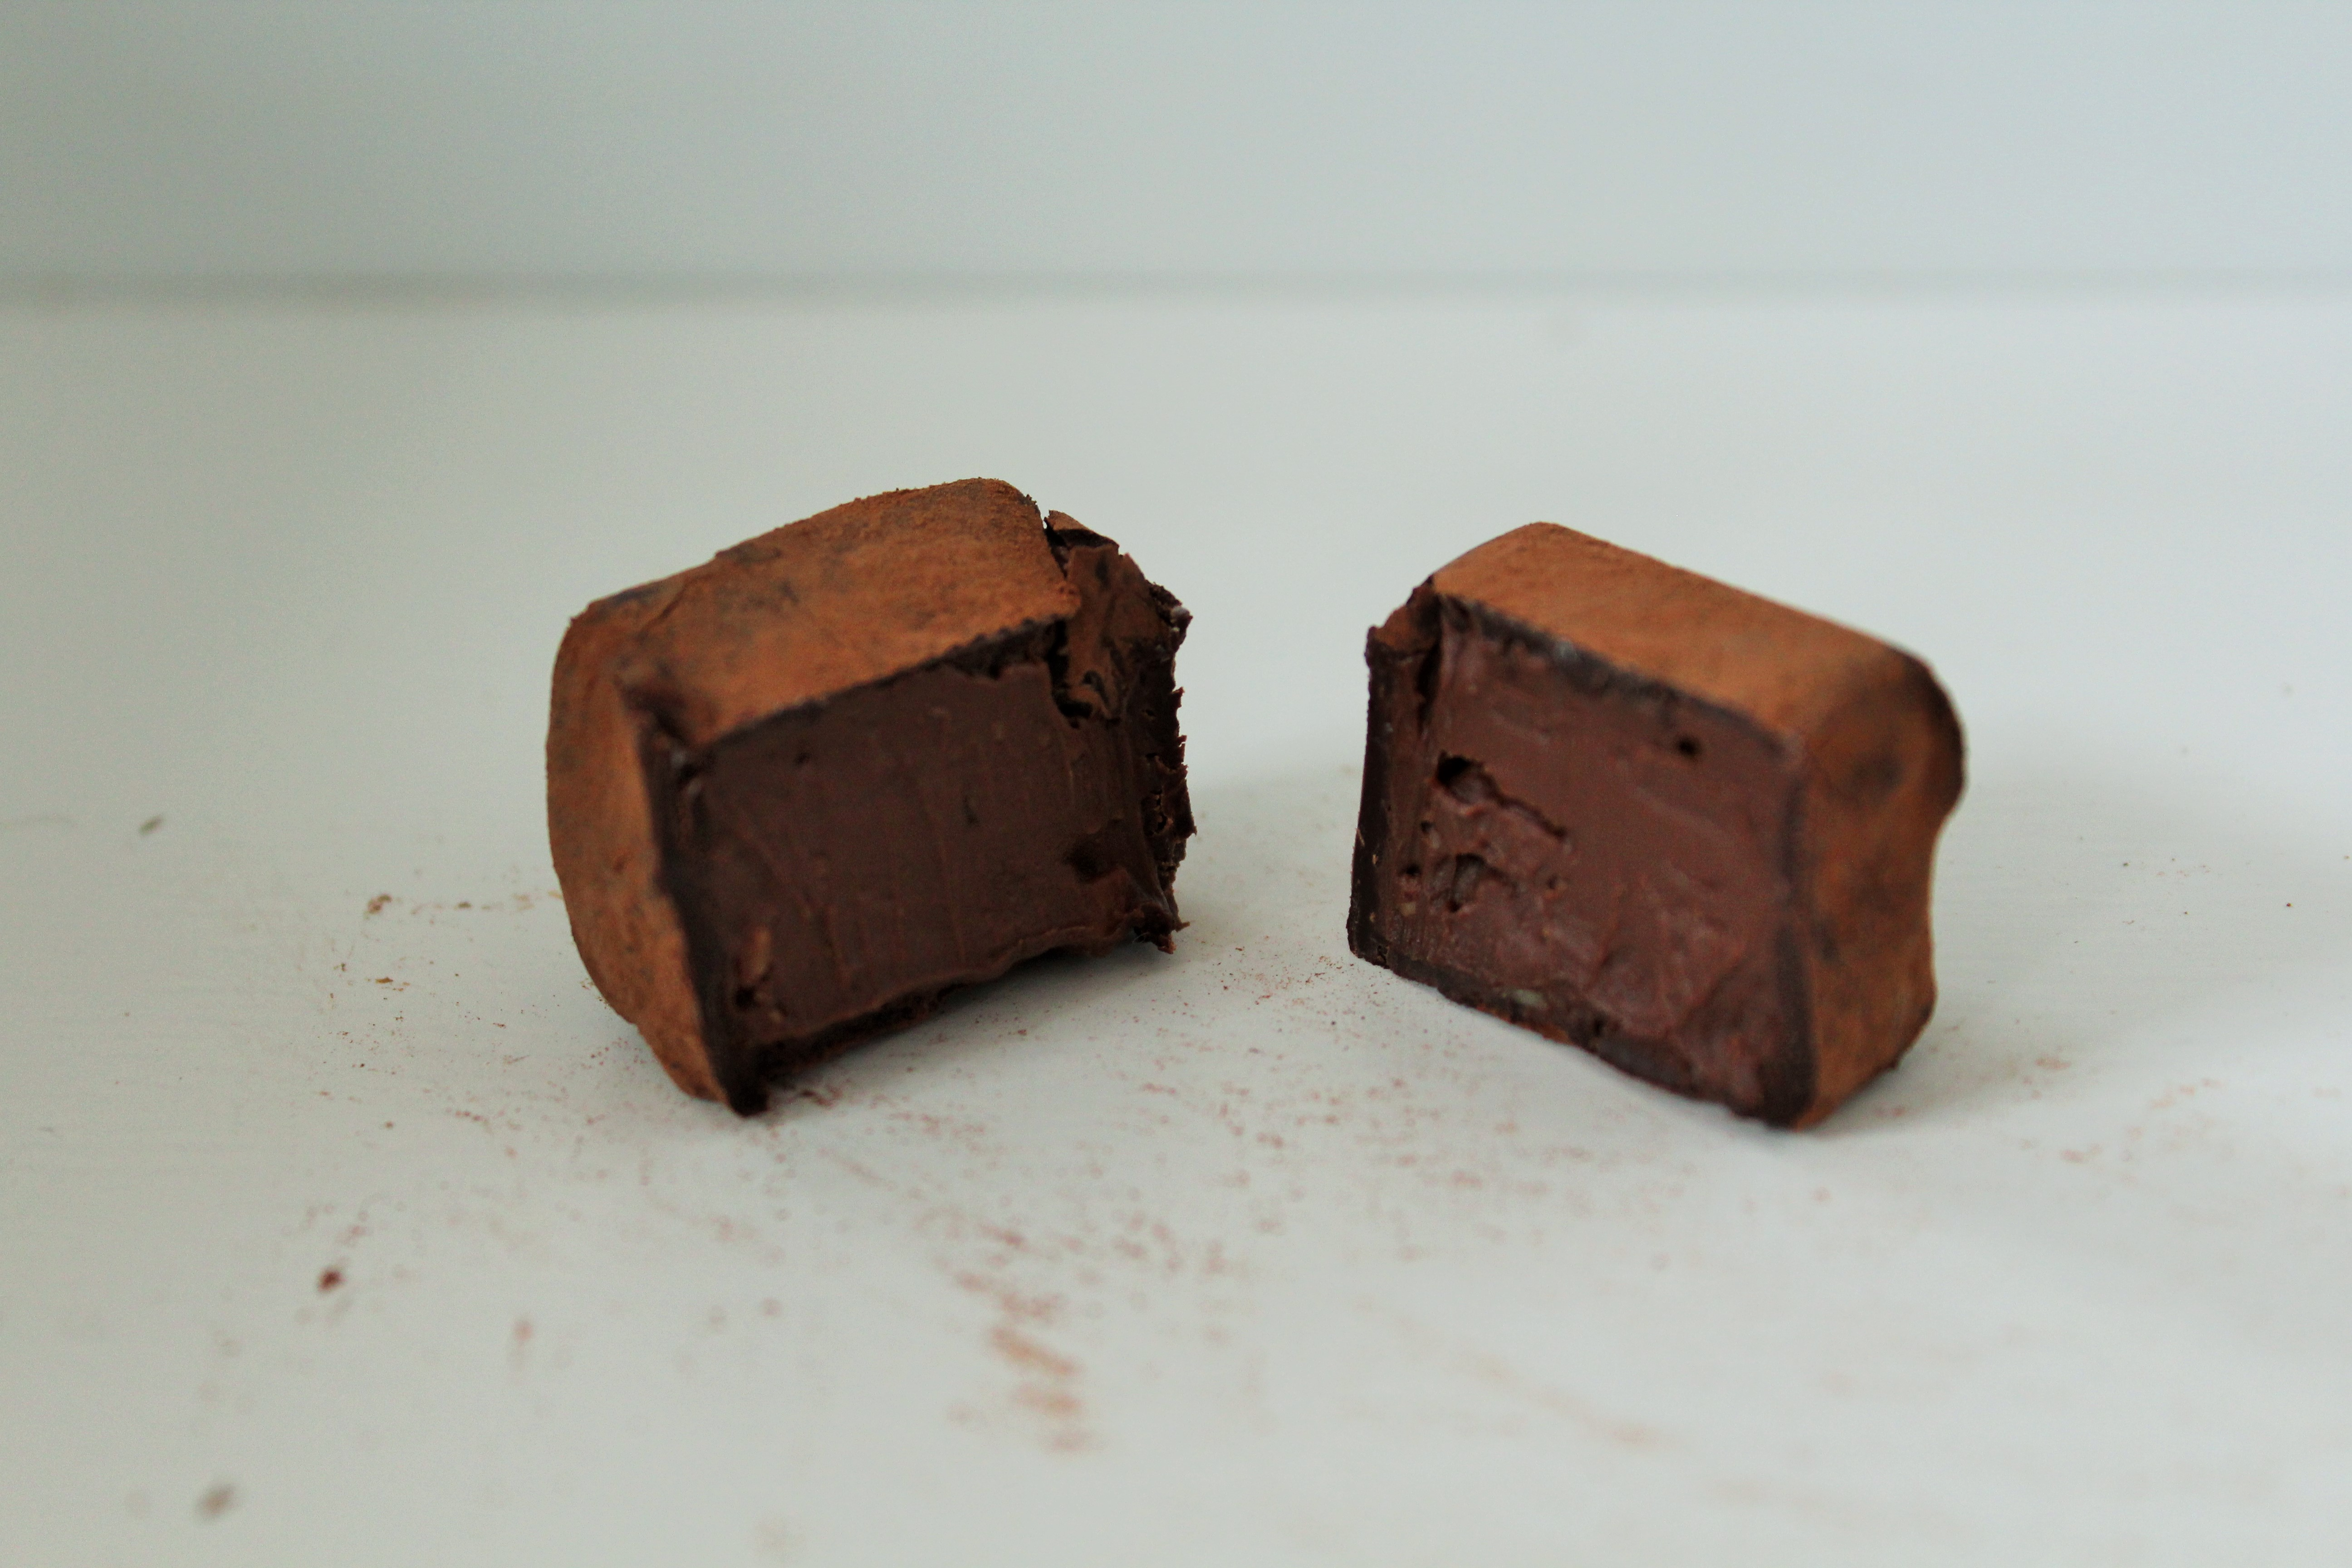 booja booja and dark sugars chocolates